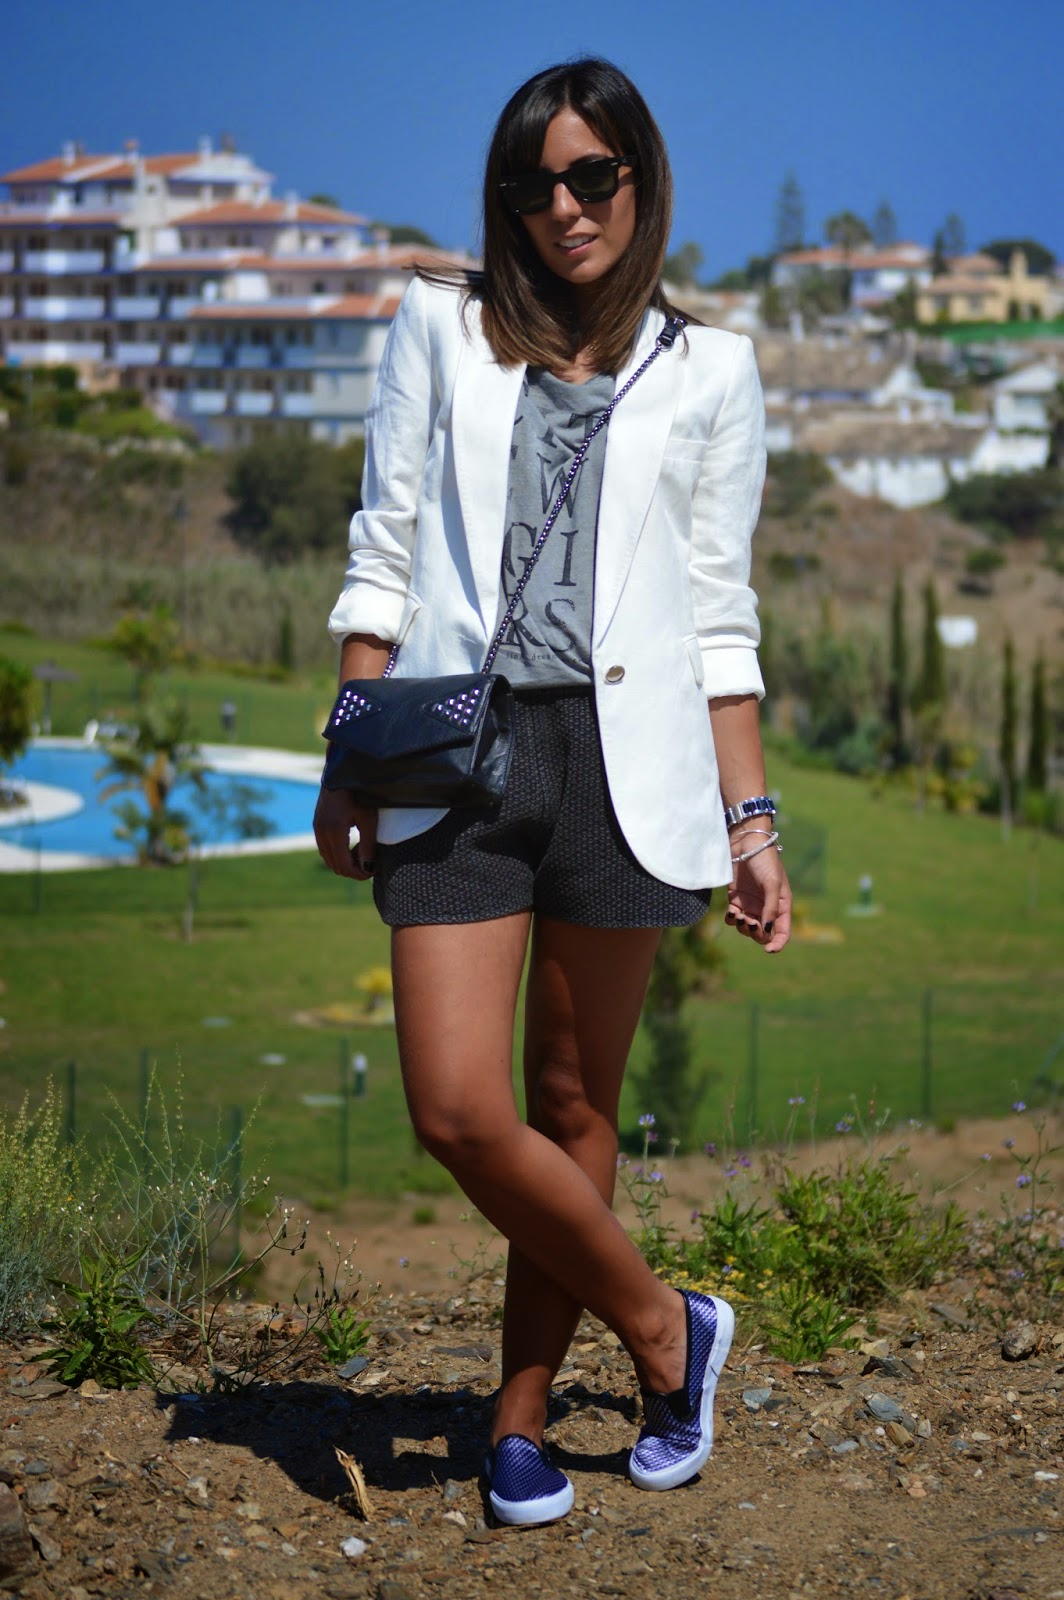 street style style fashion ootd fashion blogger malagueña blogger malagueña  outfit look me girl purse designer swag outfi look chic casual love lovely gorgeous moda mood trend inspiration cristina style slip on blazer mango